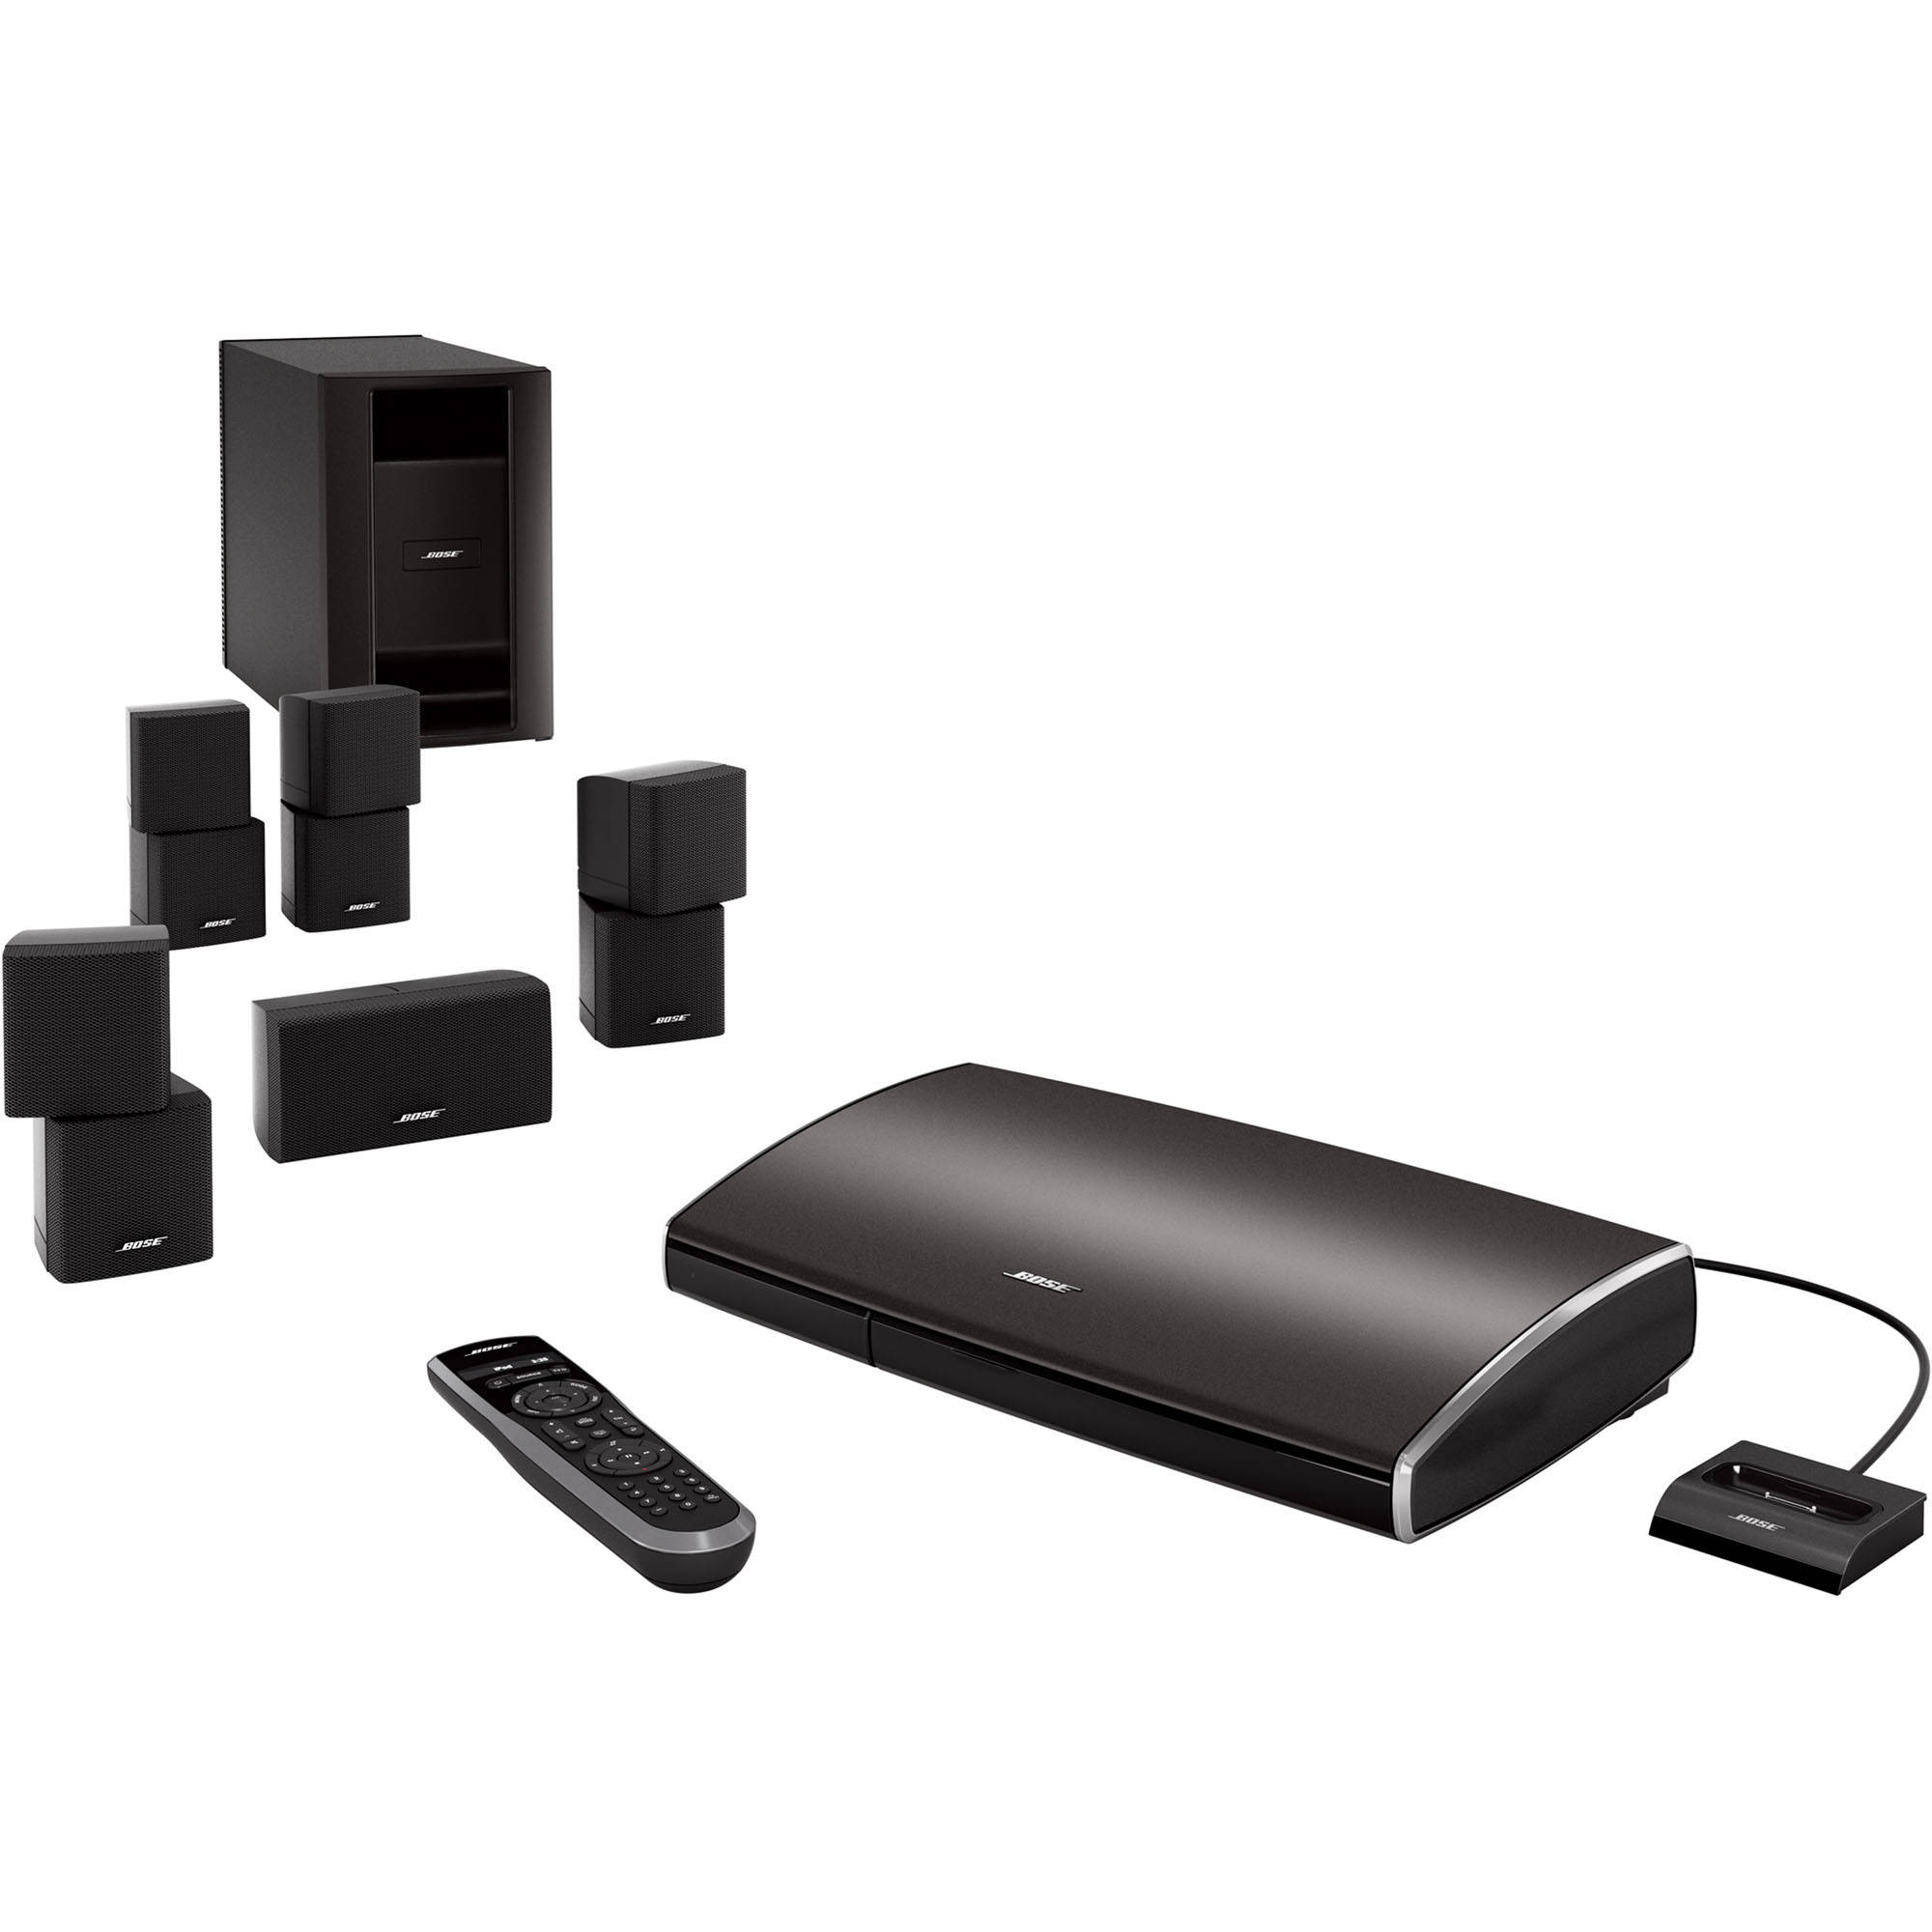 bose lifestyle v25 home entertainment system 318042